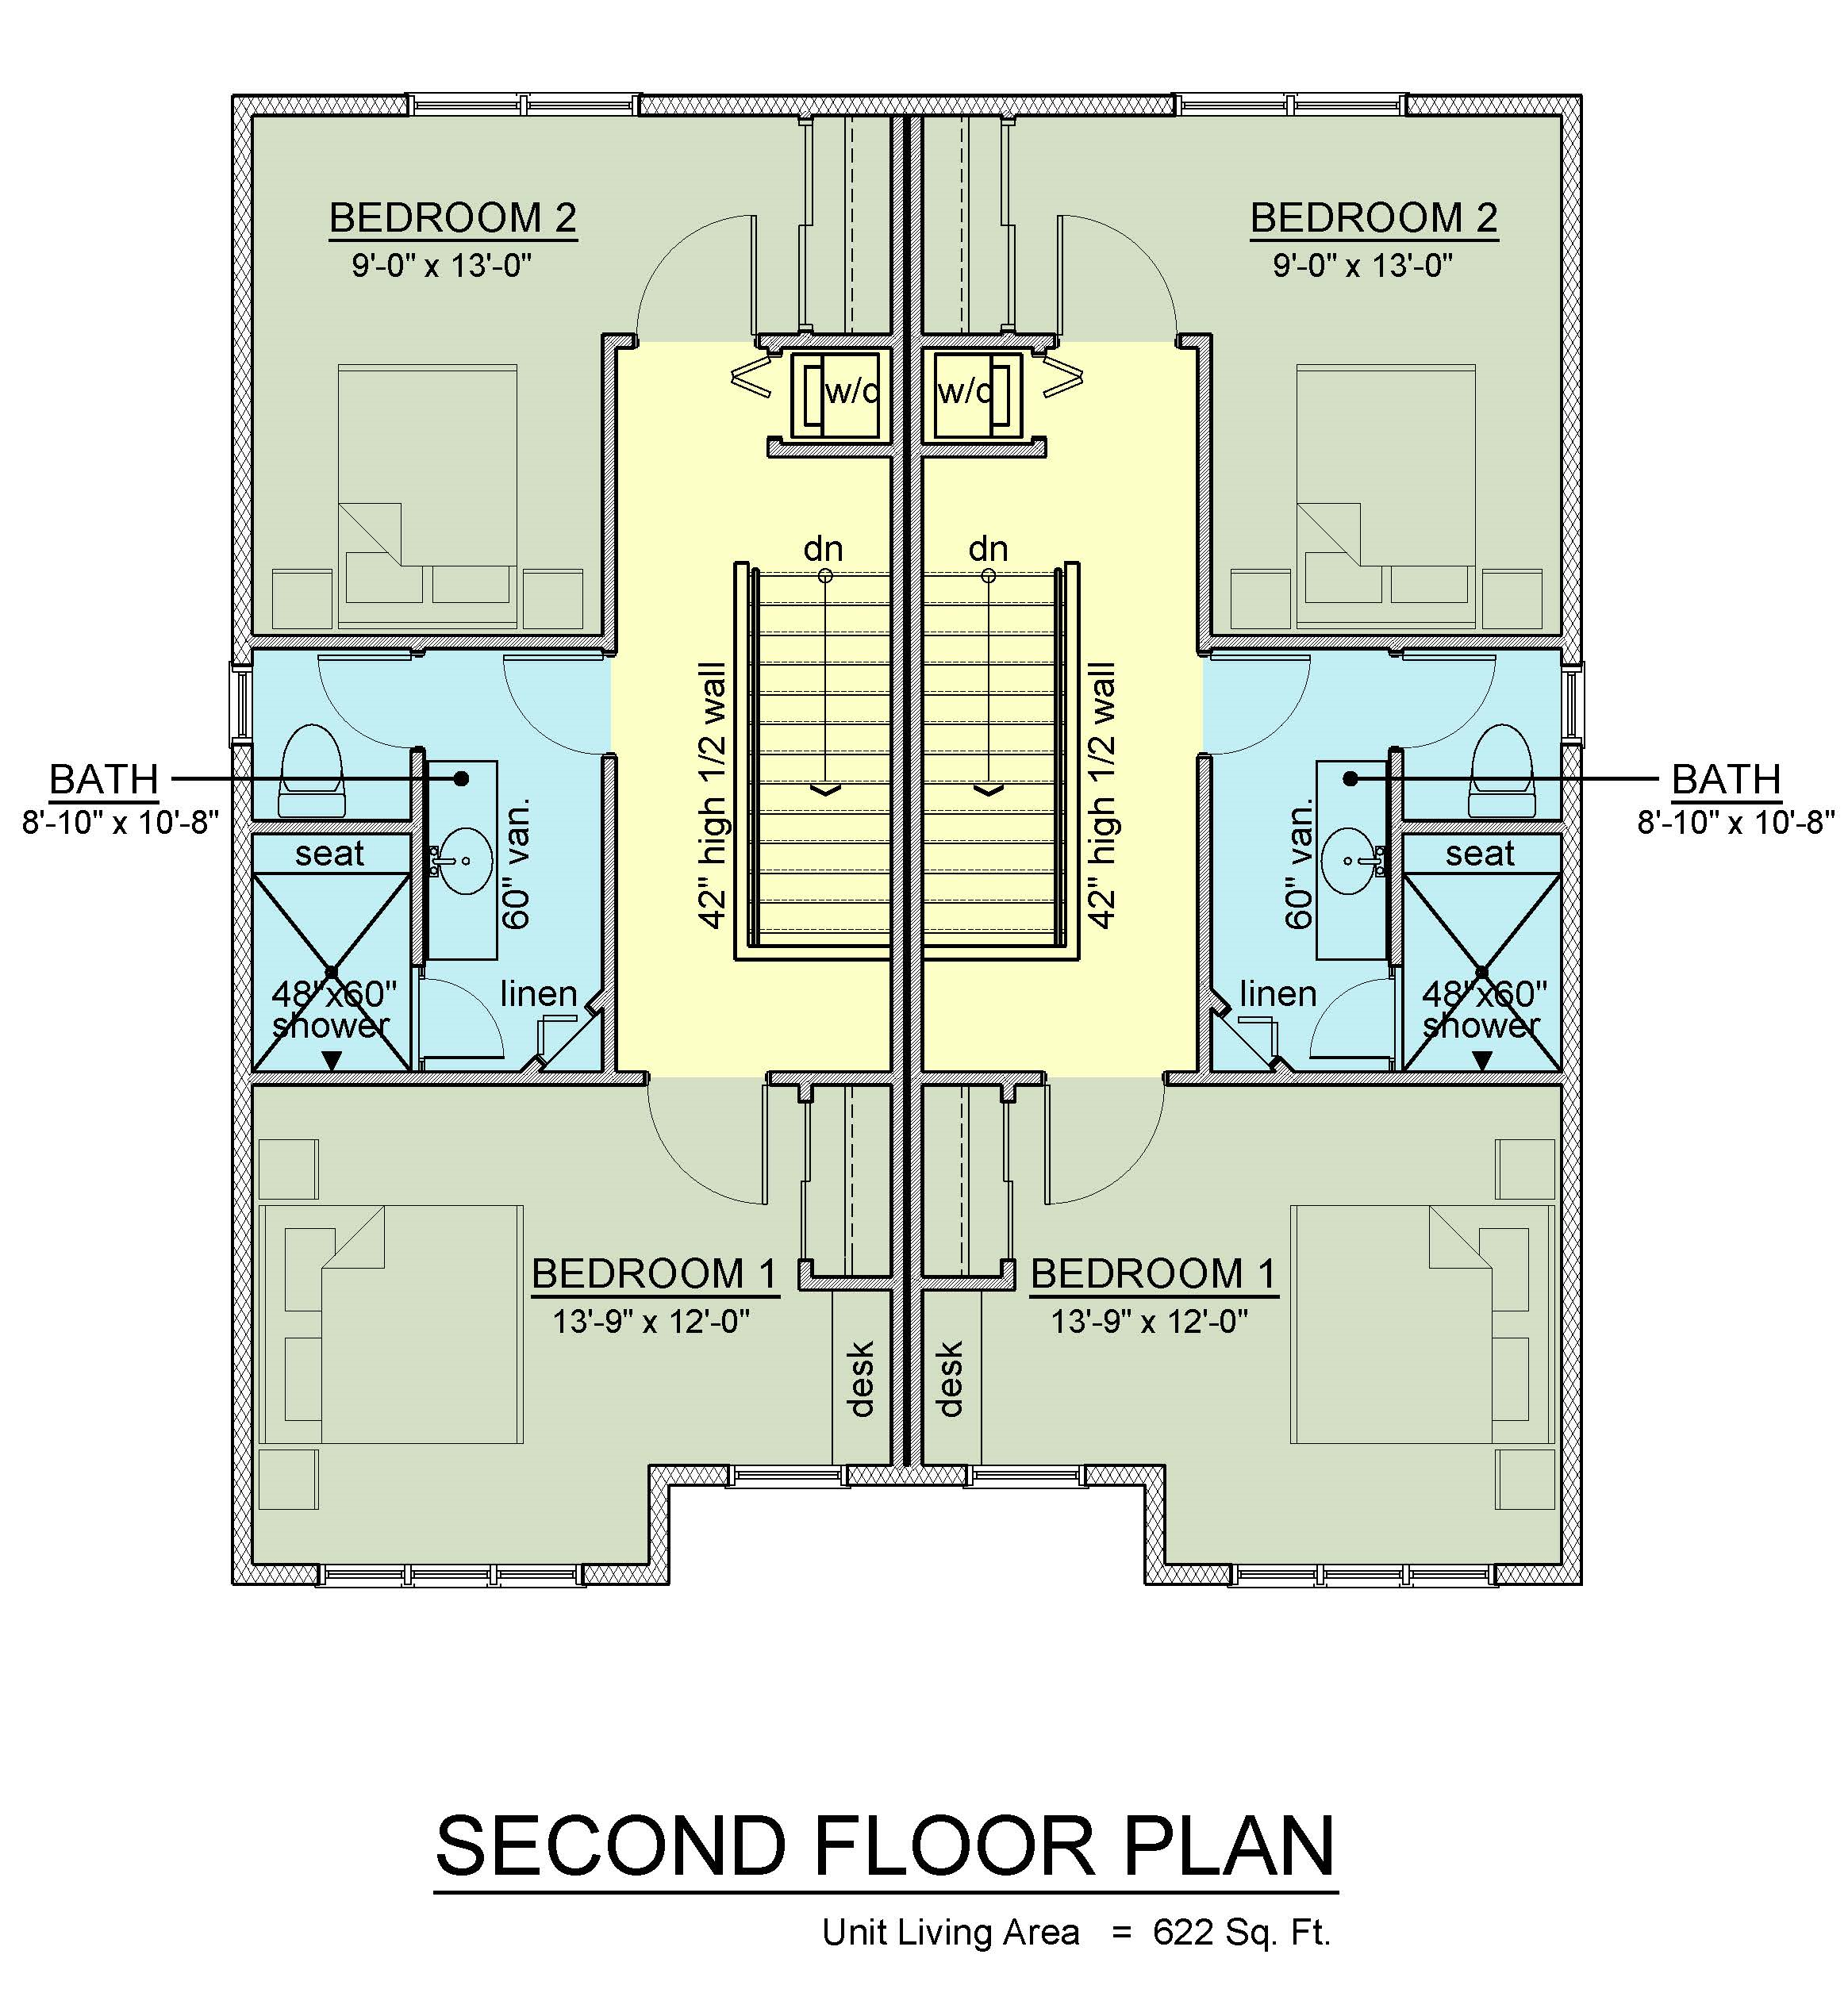 second floor plan - Second Floor Floor Plans